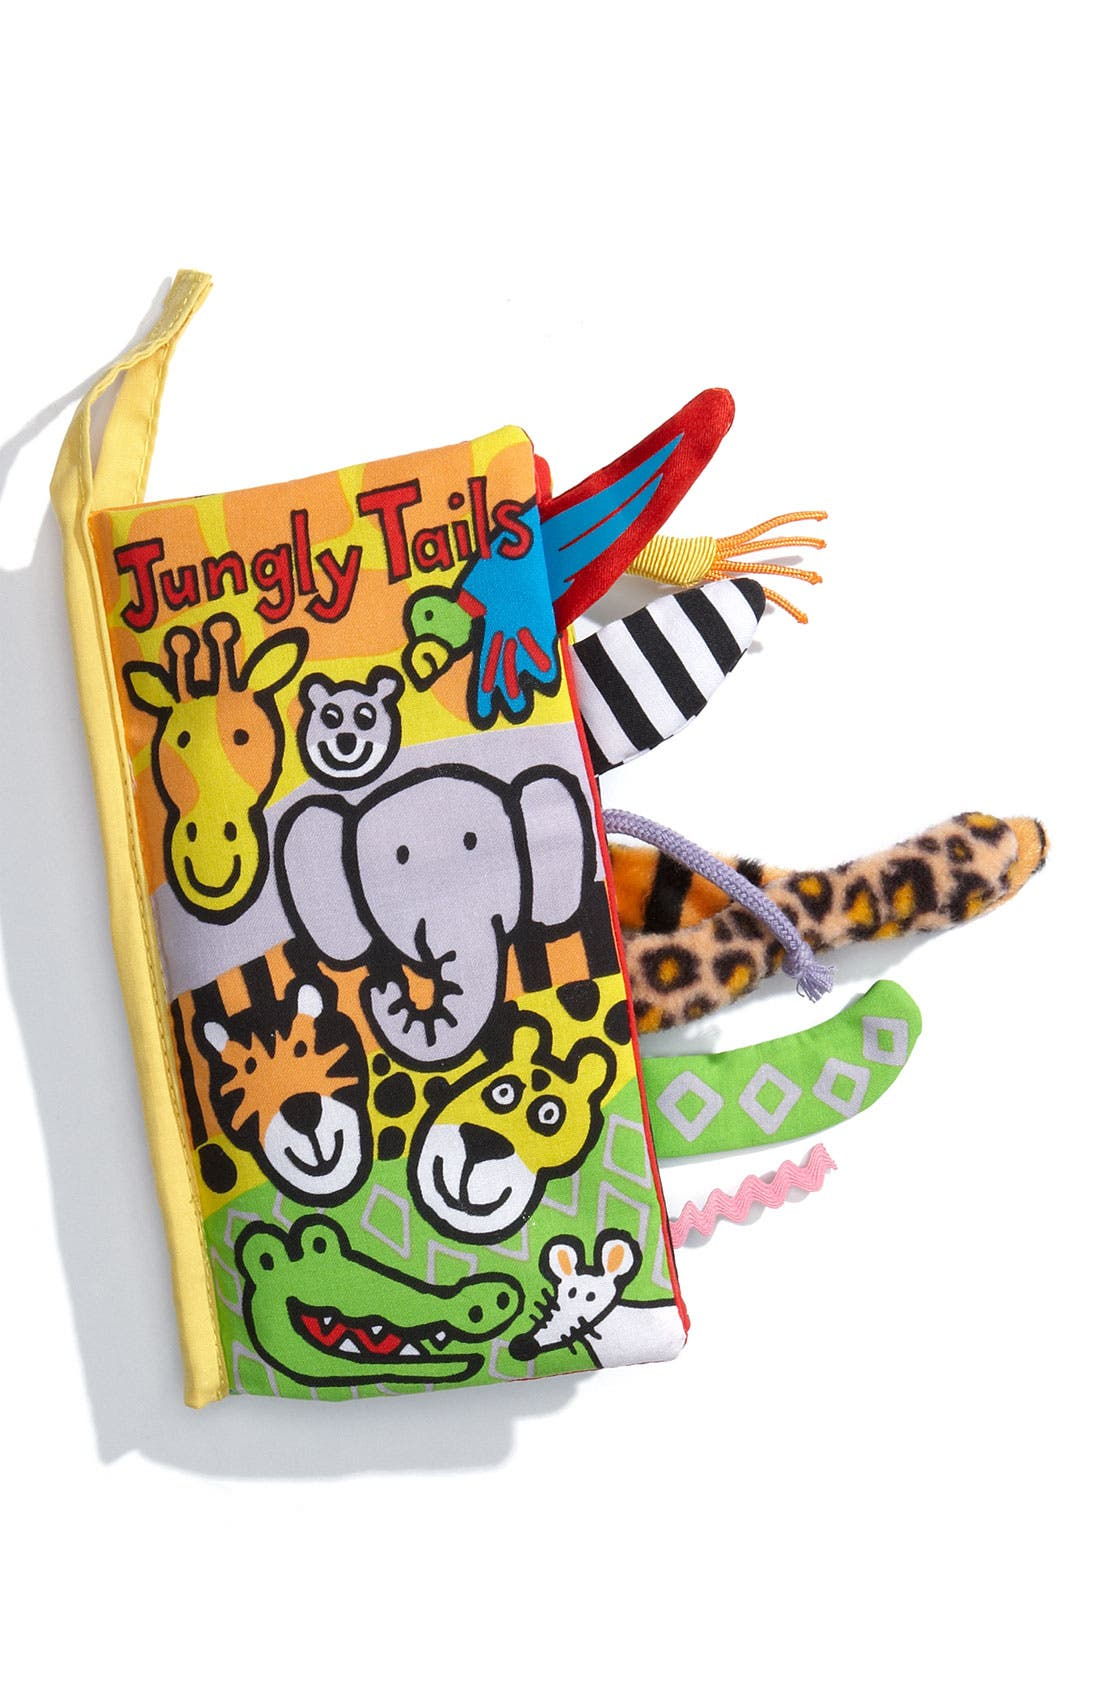 Alternate Image 1 Selected - 'Jungly Tails' Cloth Book